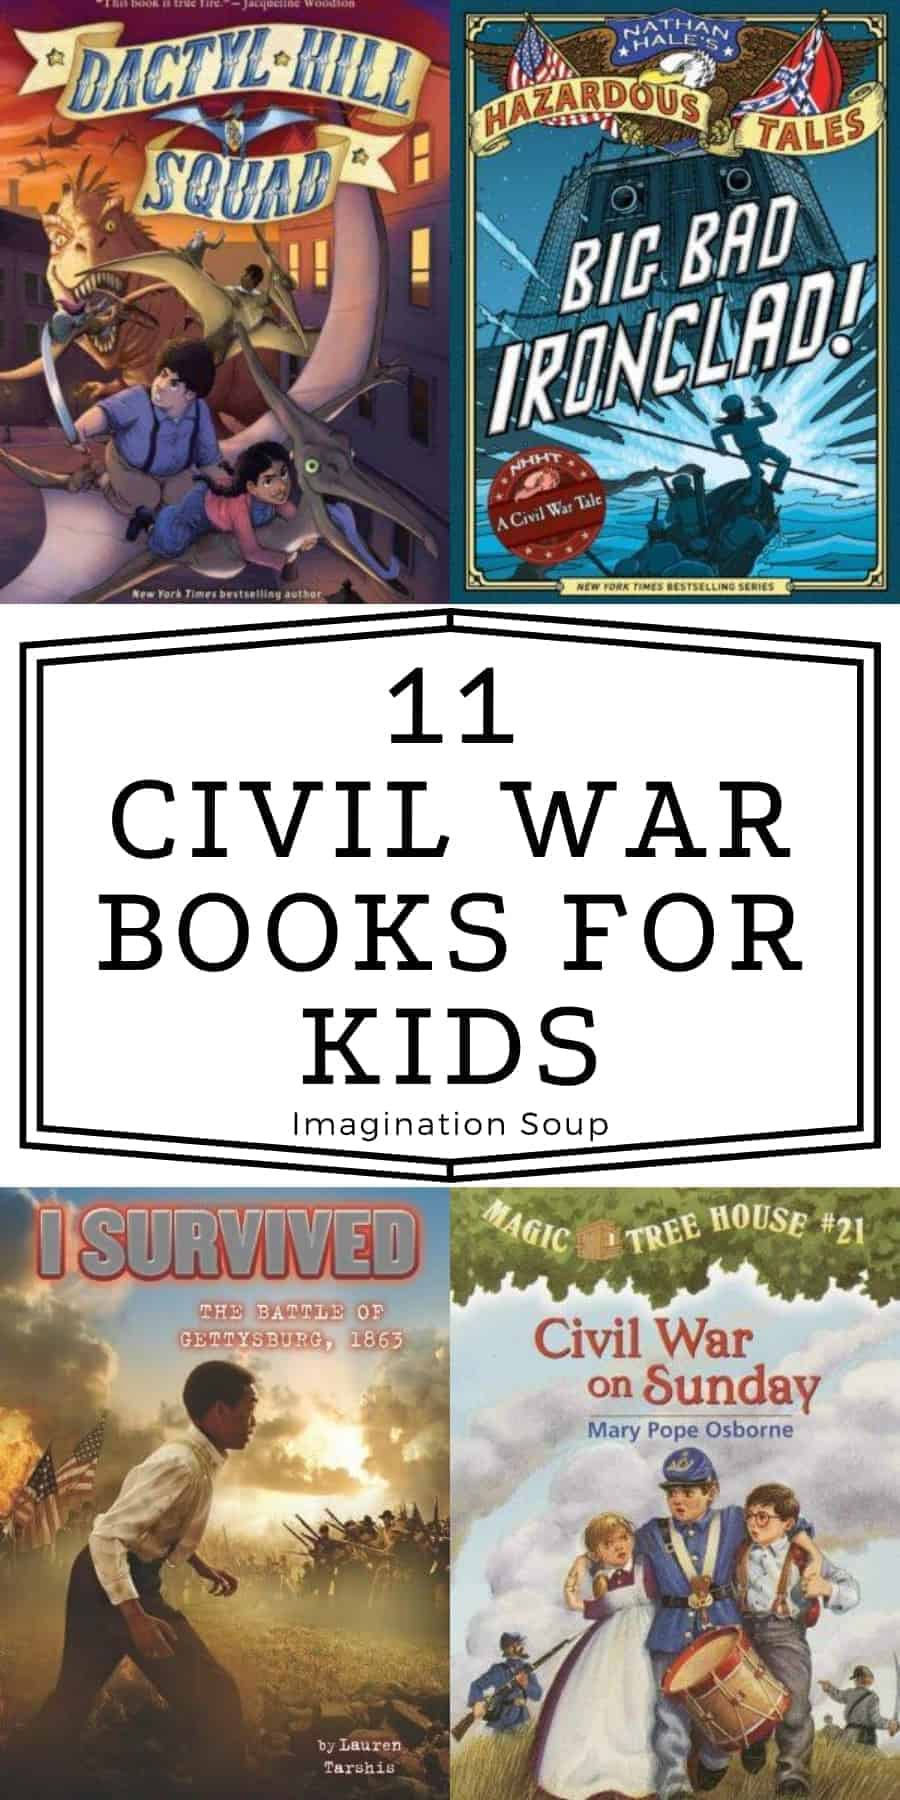 children's chapter books about the Civil War